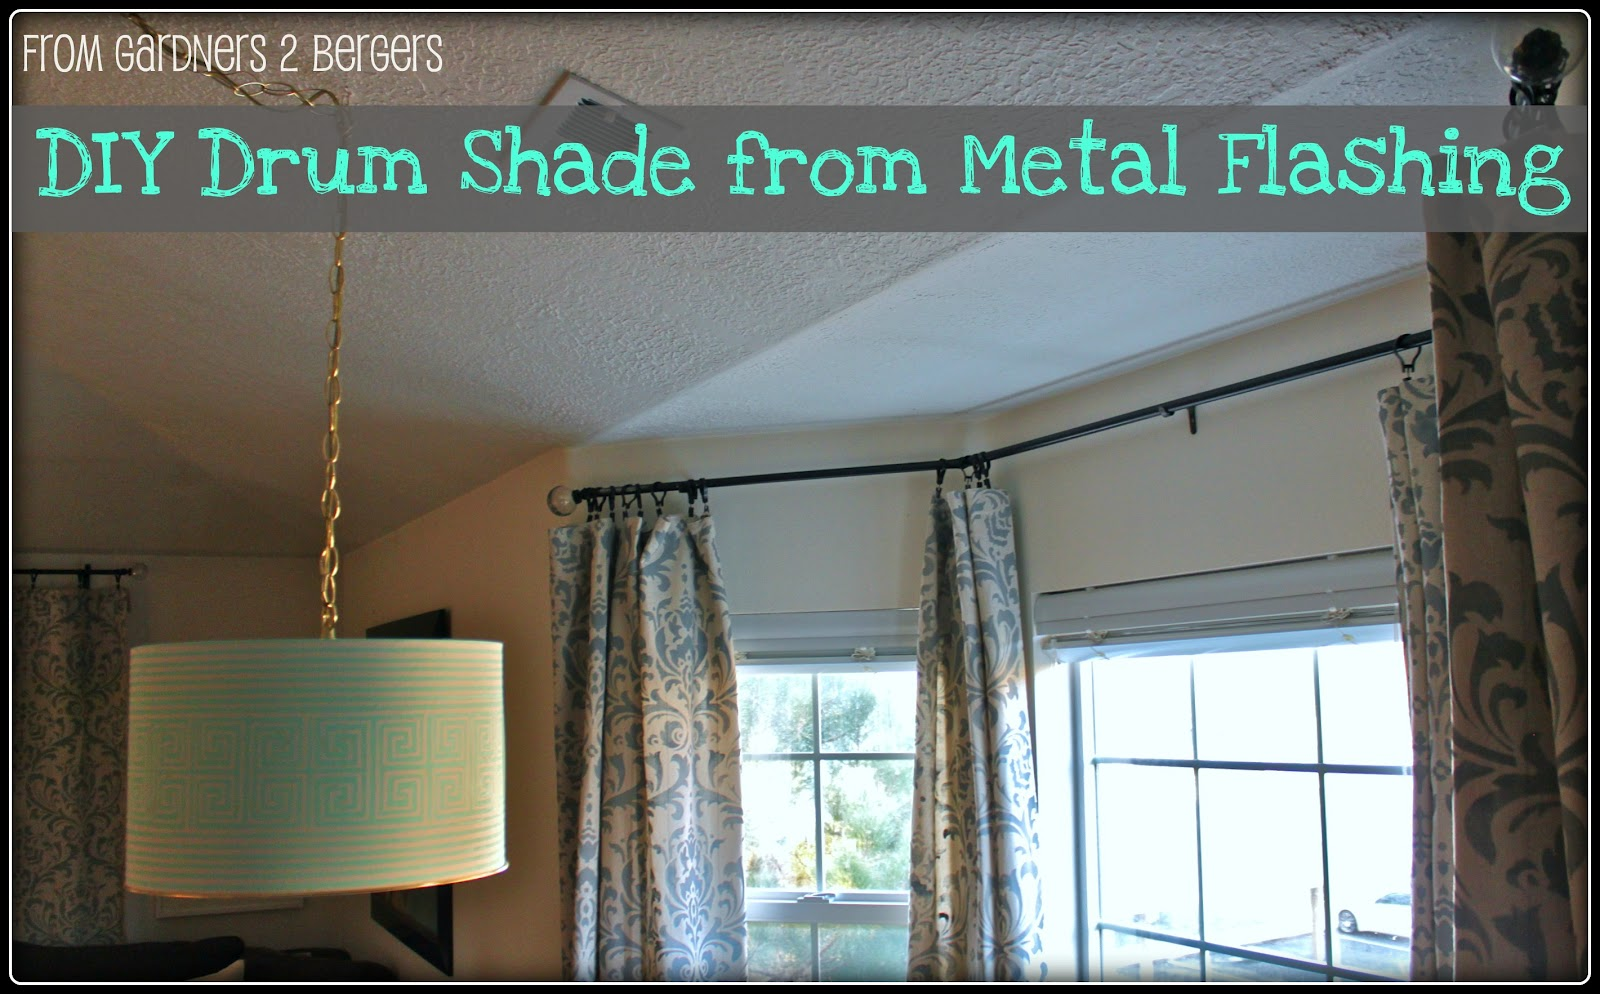 DIY-Drum-Shade-from-Metal-Flashing